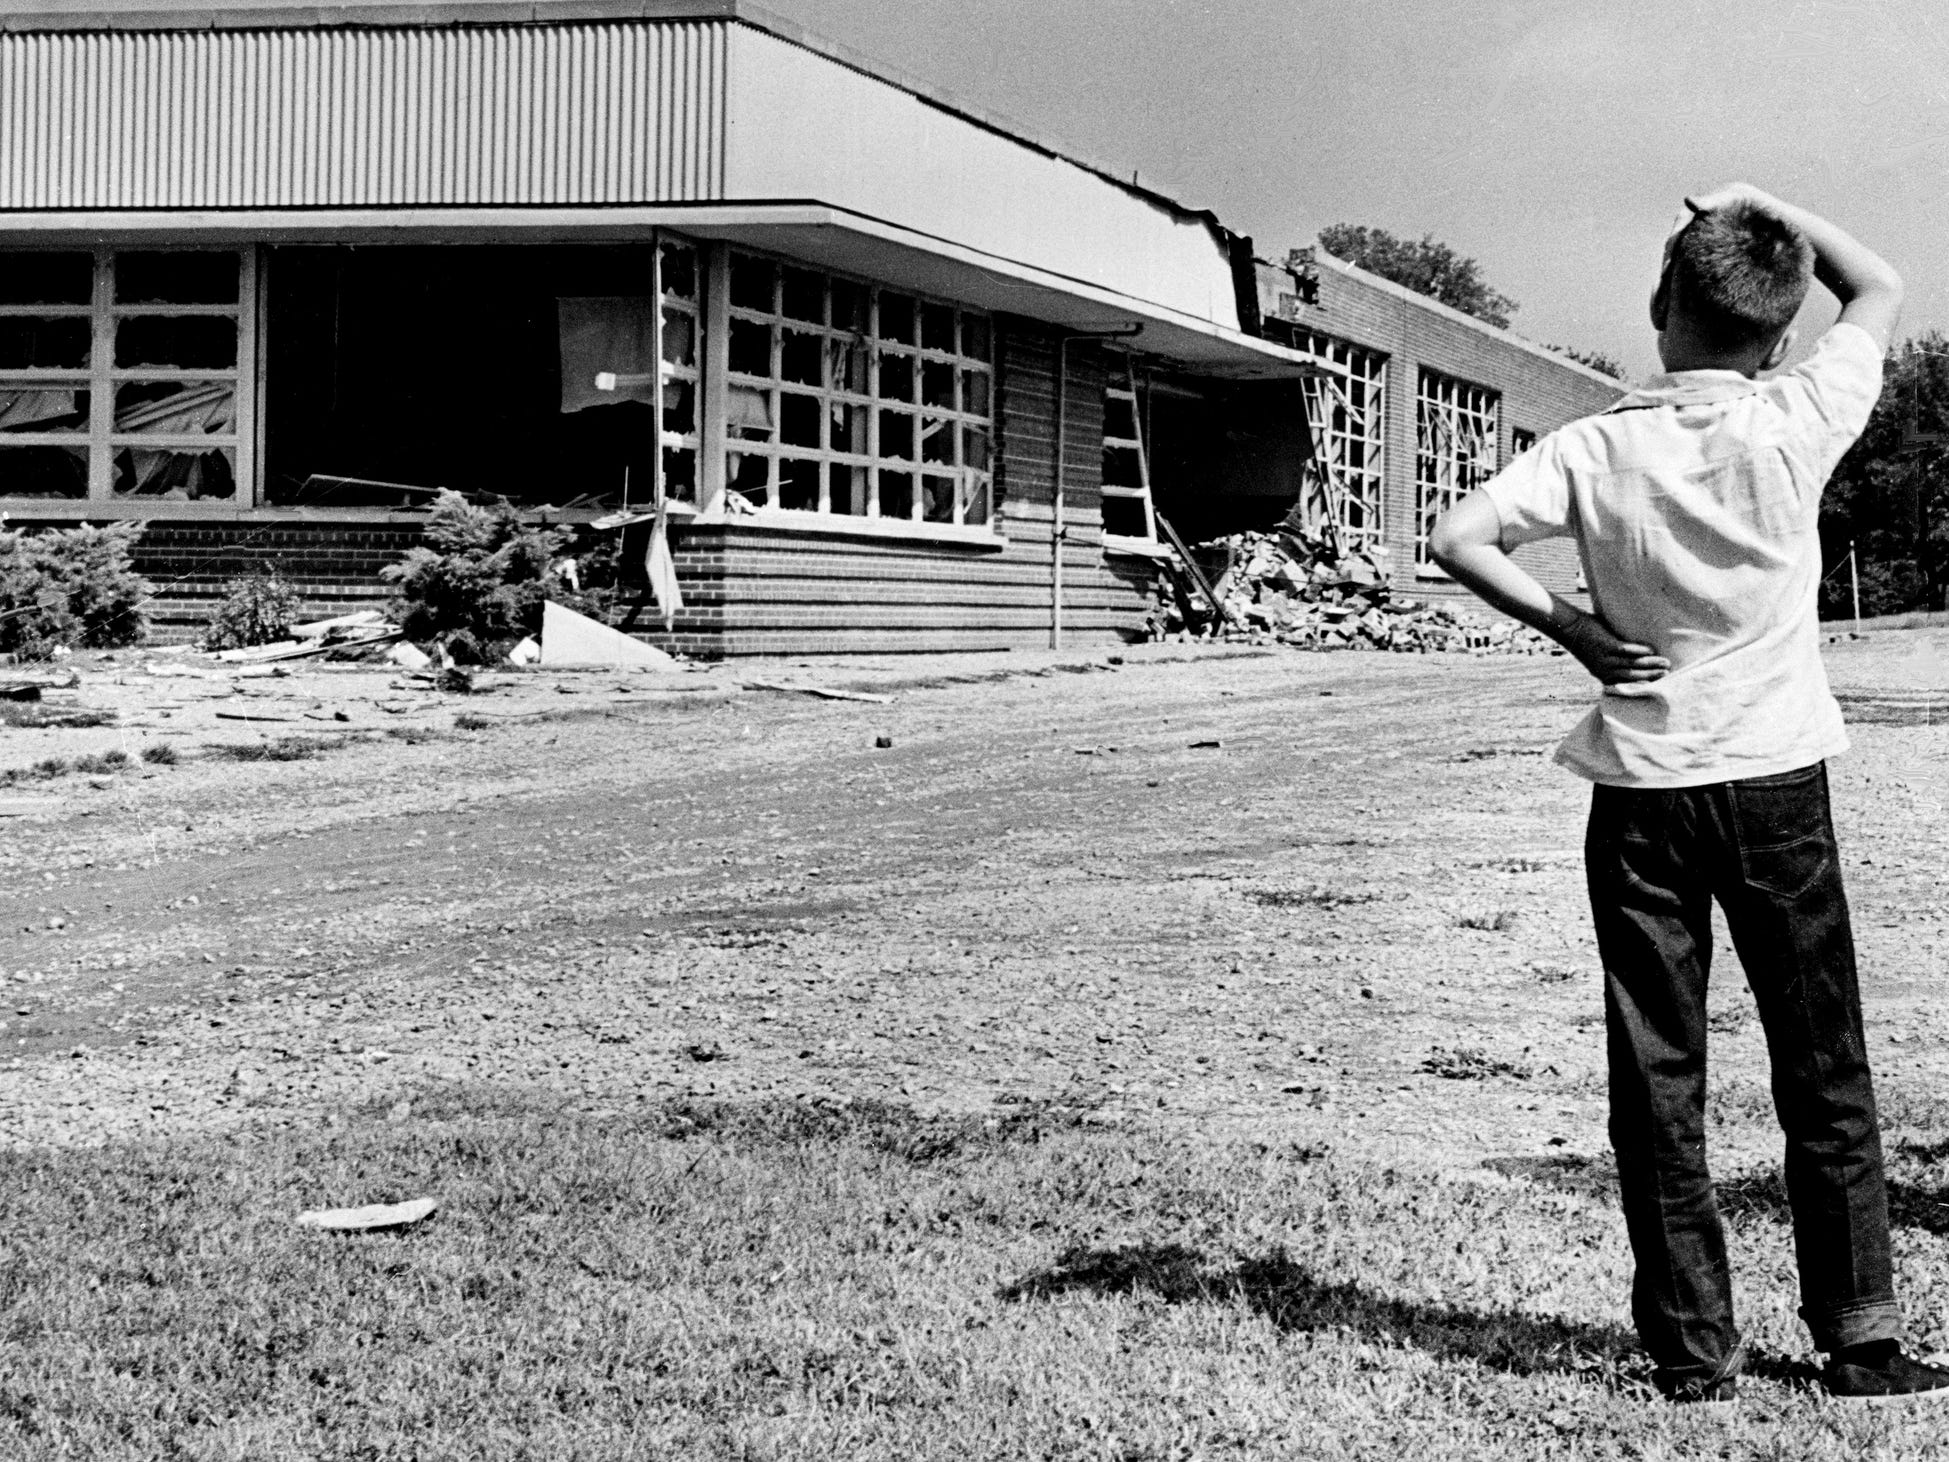 A boy surveys the damage done by dynamite to Hattie Cotton School, where 390 first- through sixth-grade students normally attend, on Sept. 10, 1957.